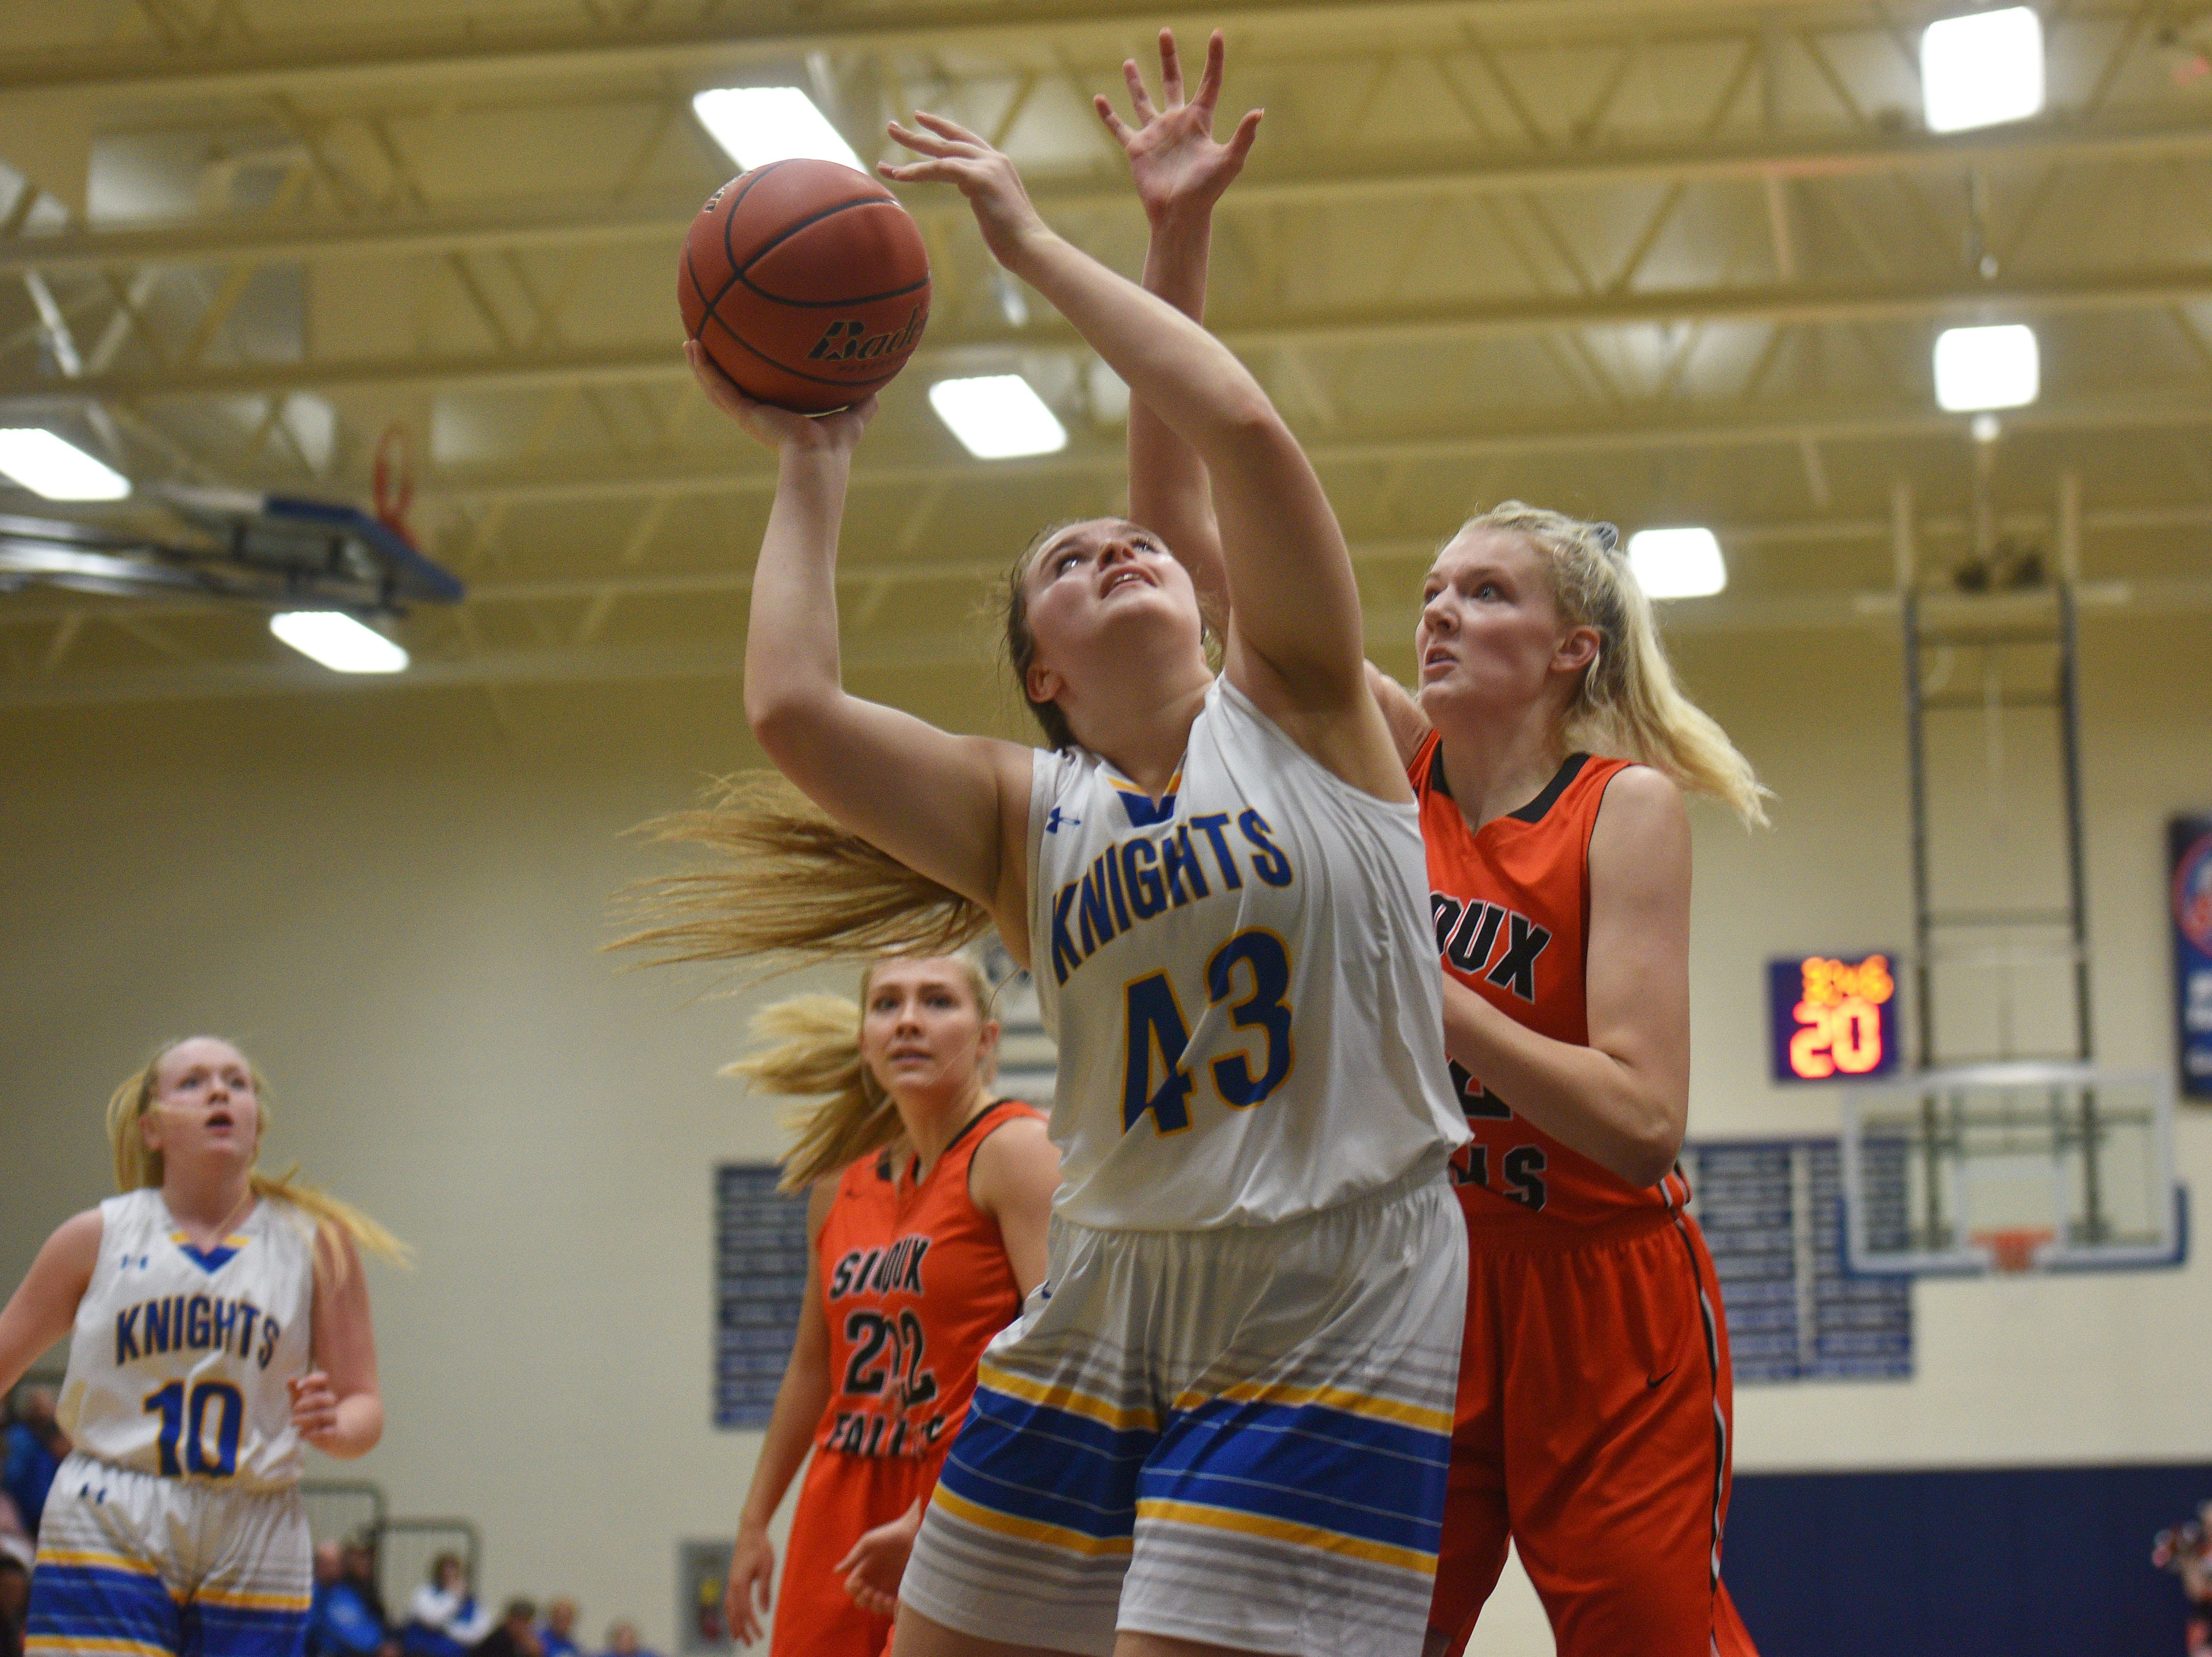 O'Gorman's Courtney Baruth goes against Washington defense during the game Thursday, Jan. 10, at O'Gorman in Sioux Falls.